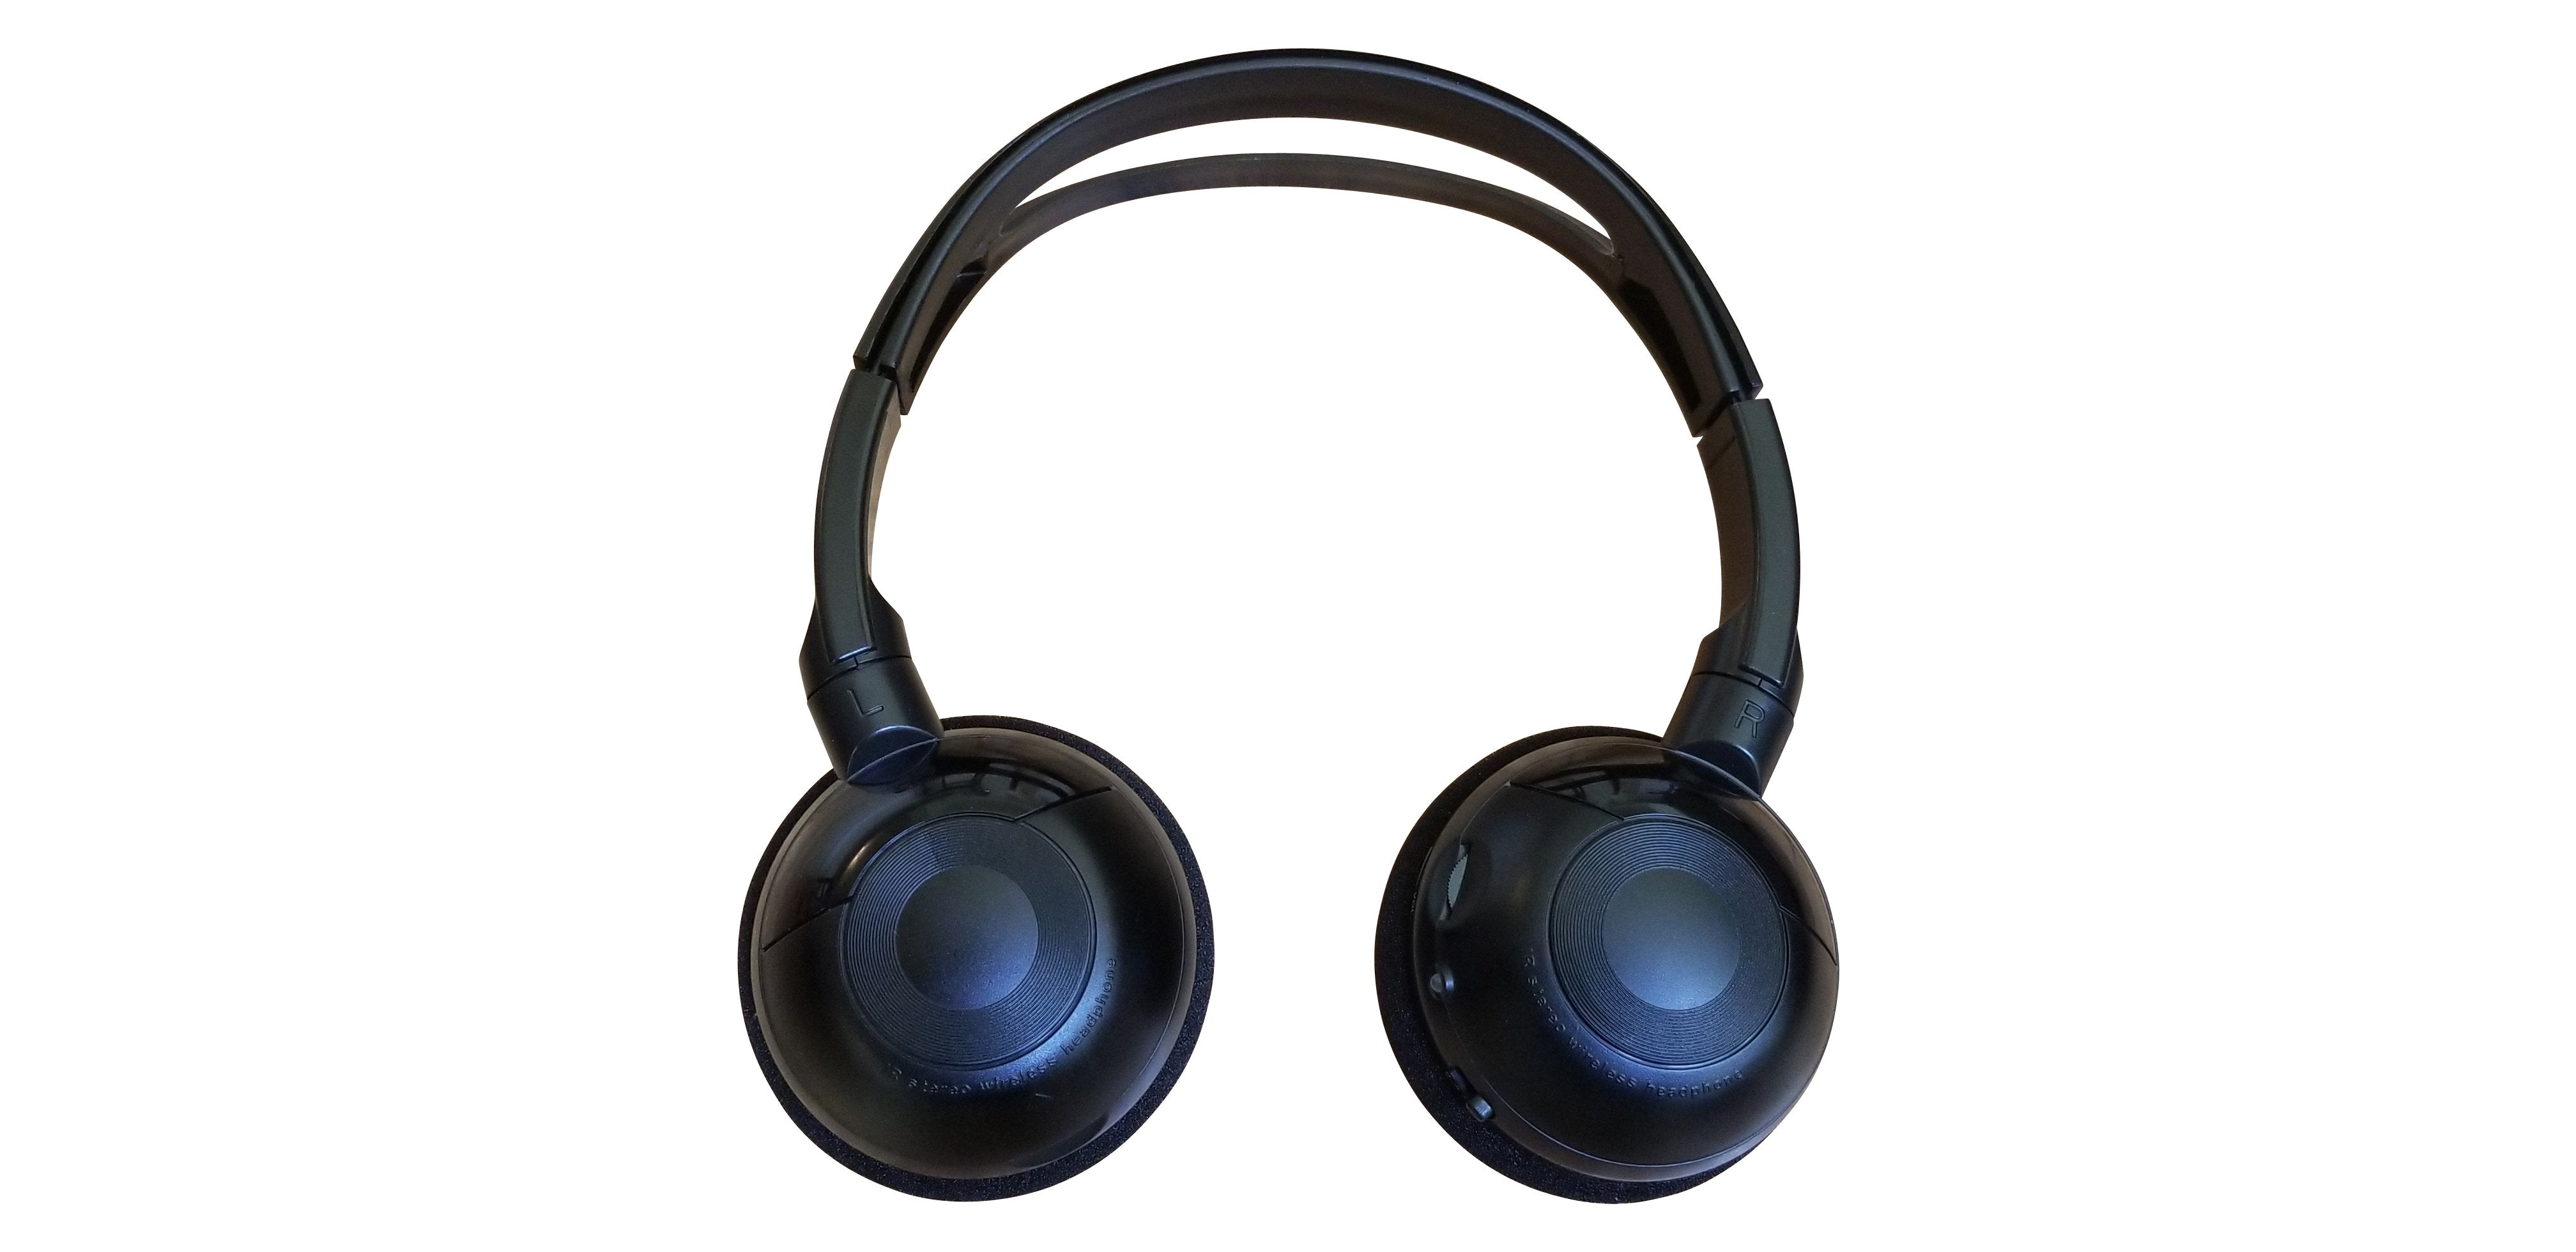 2011 Toyota Land-Cruiser Wireless DVD Headphone